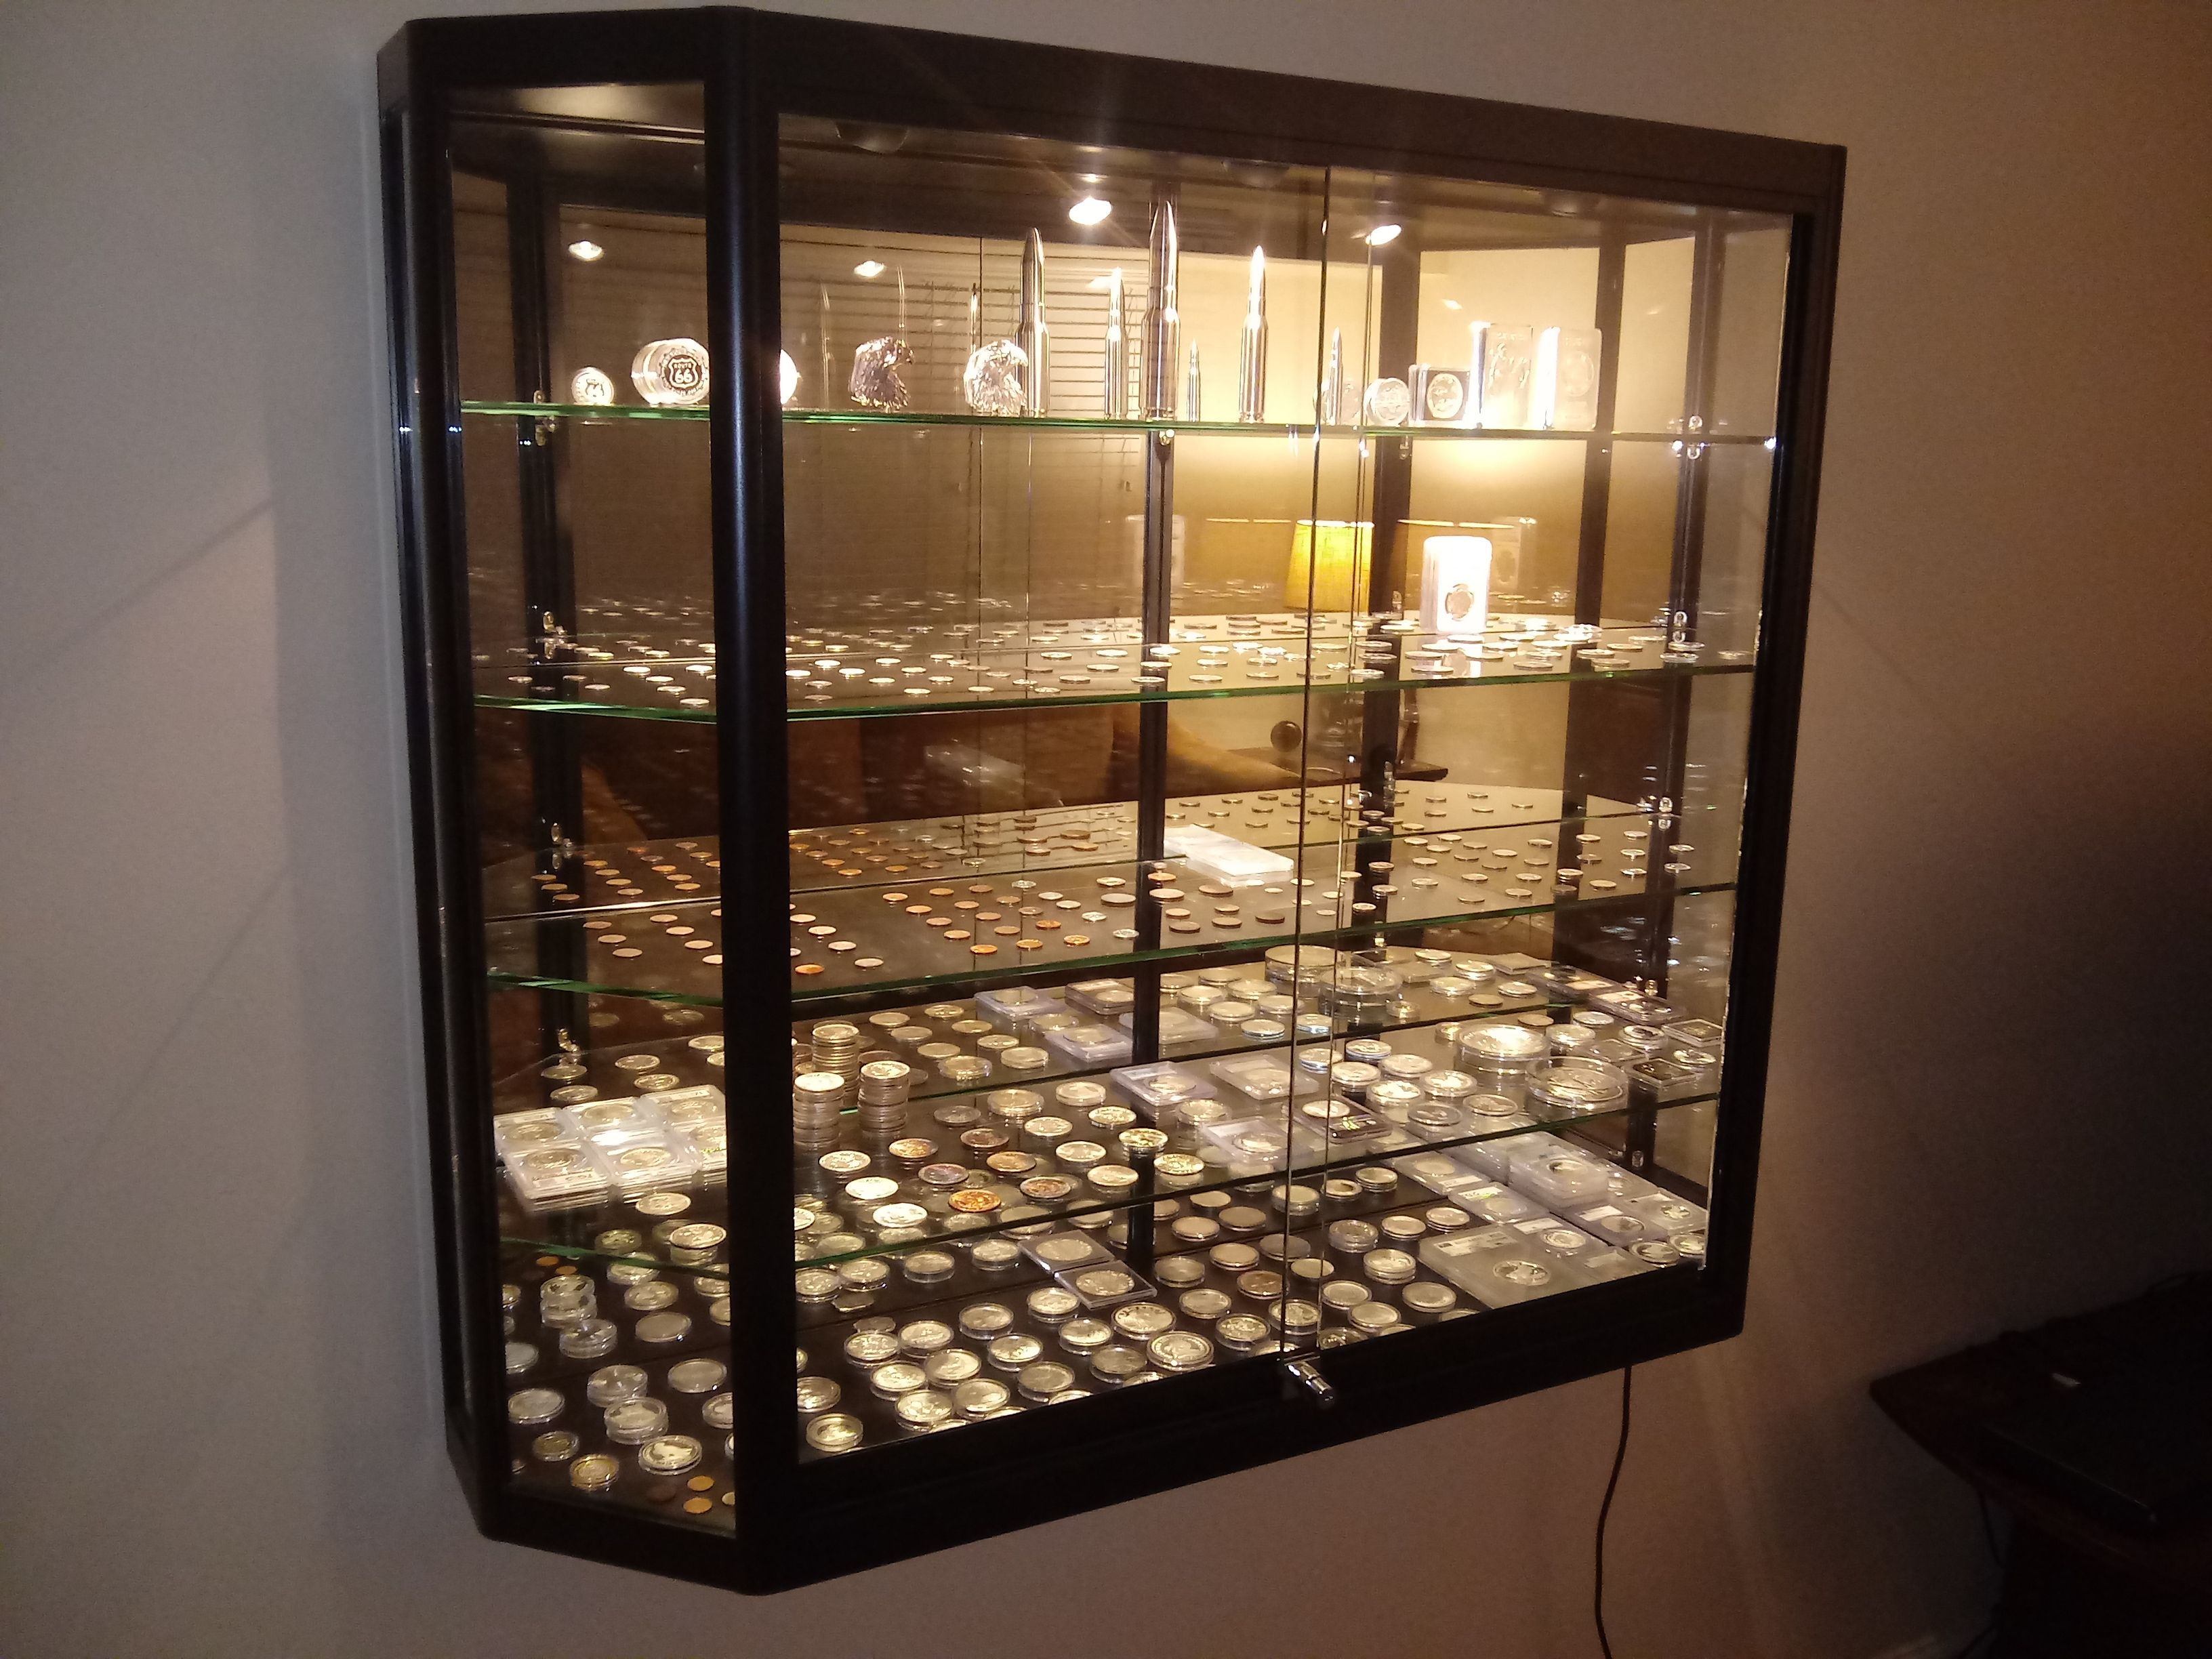 Coin Collector S Display Case Wall Mounted Display Case Tempered Glass Shelves Display Case